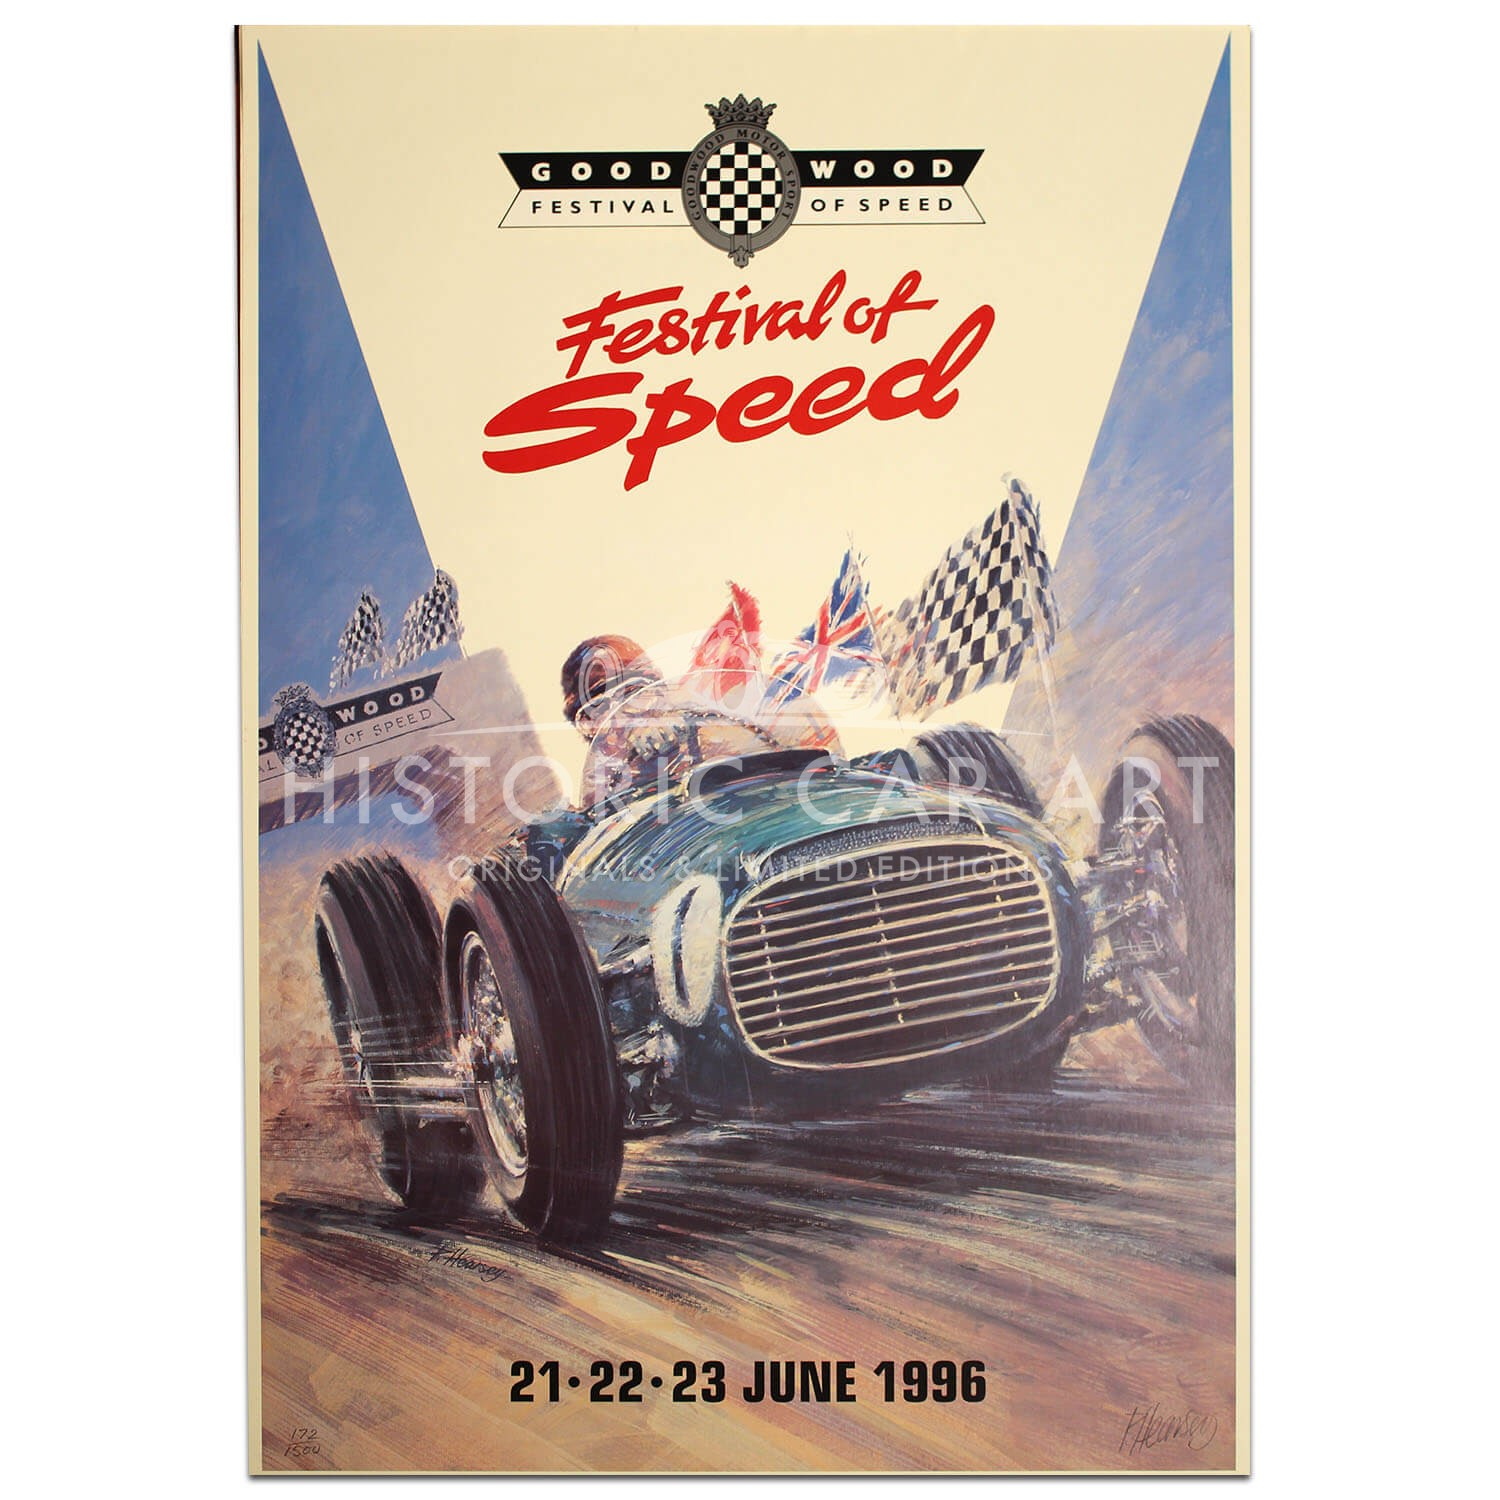 British | Goodwood Festival of Speed 1996 Poster